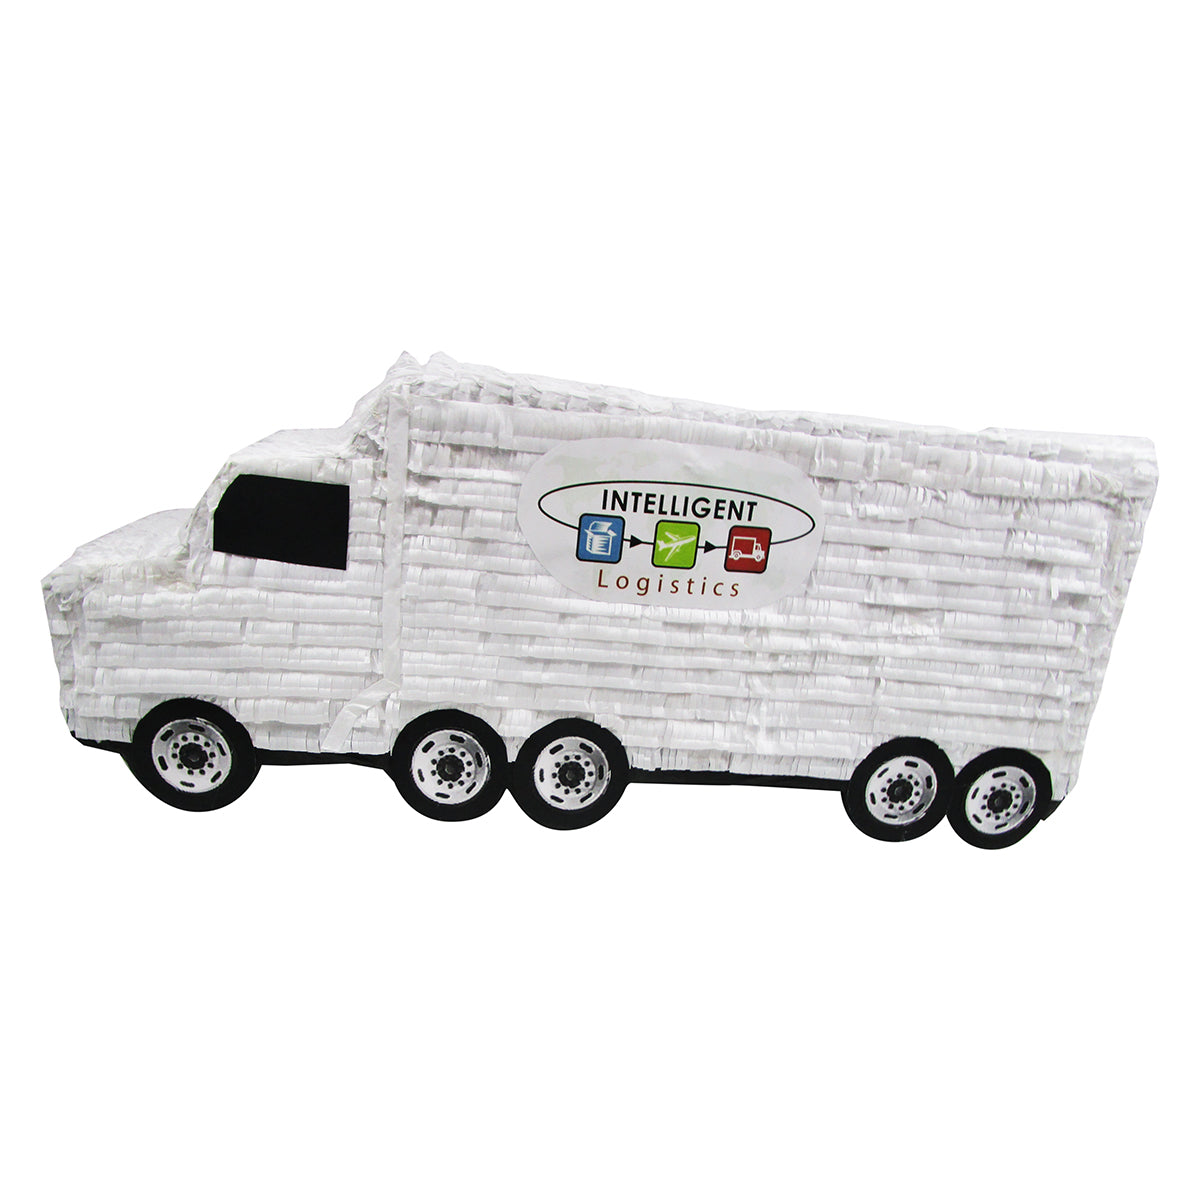 Intelligent Logistics Promotional Pinata